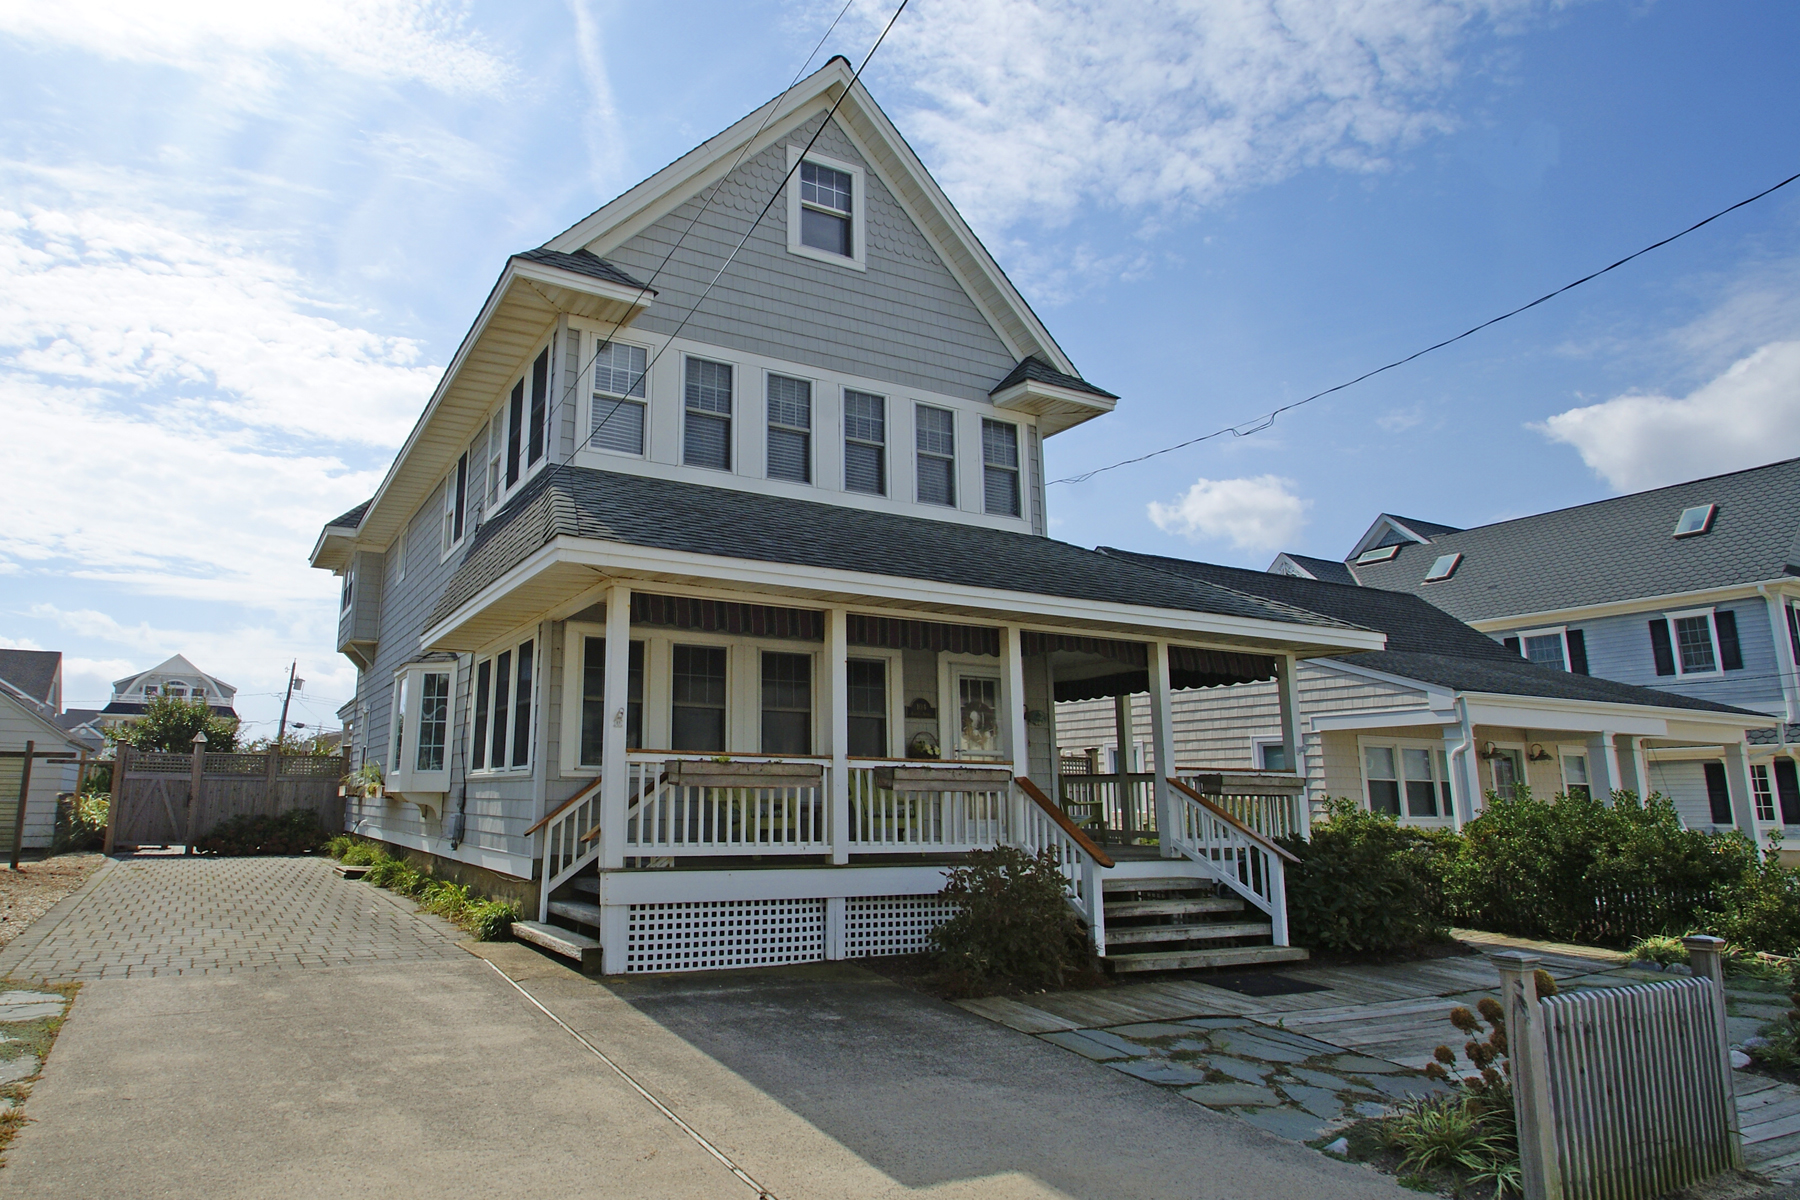 Single Family Home for Sale at Charming Ocean Block Home With Ocean Views 104 8th Avenue, Normandy Beach, New Jersey 08739 United States